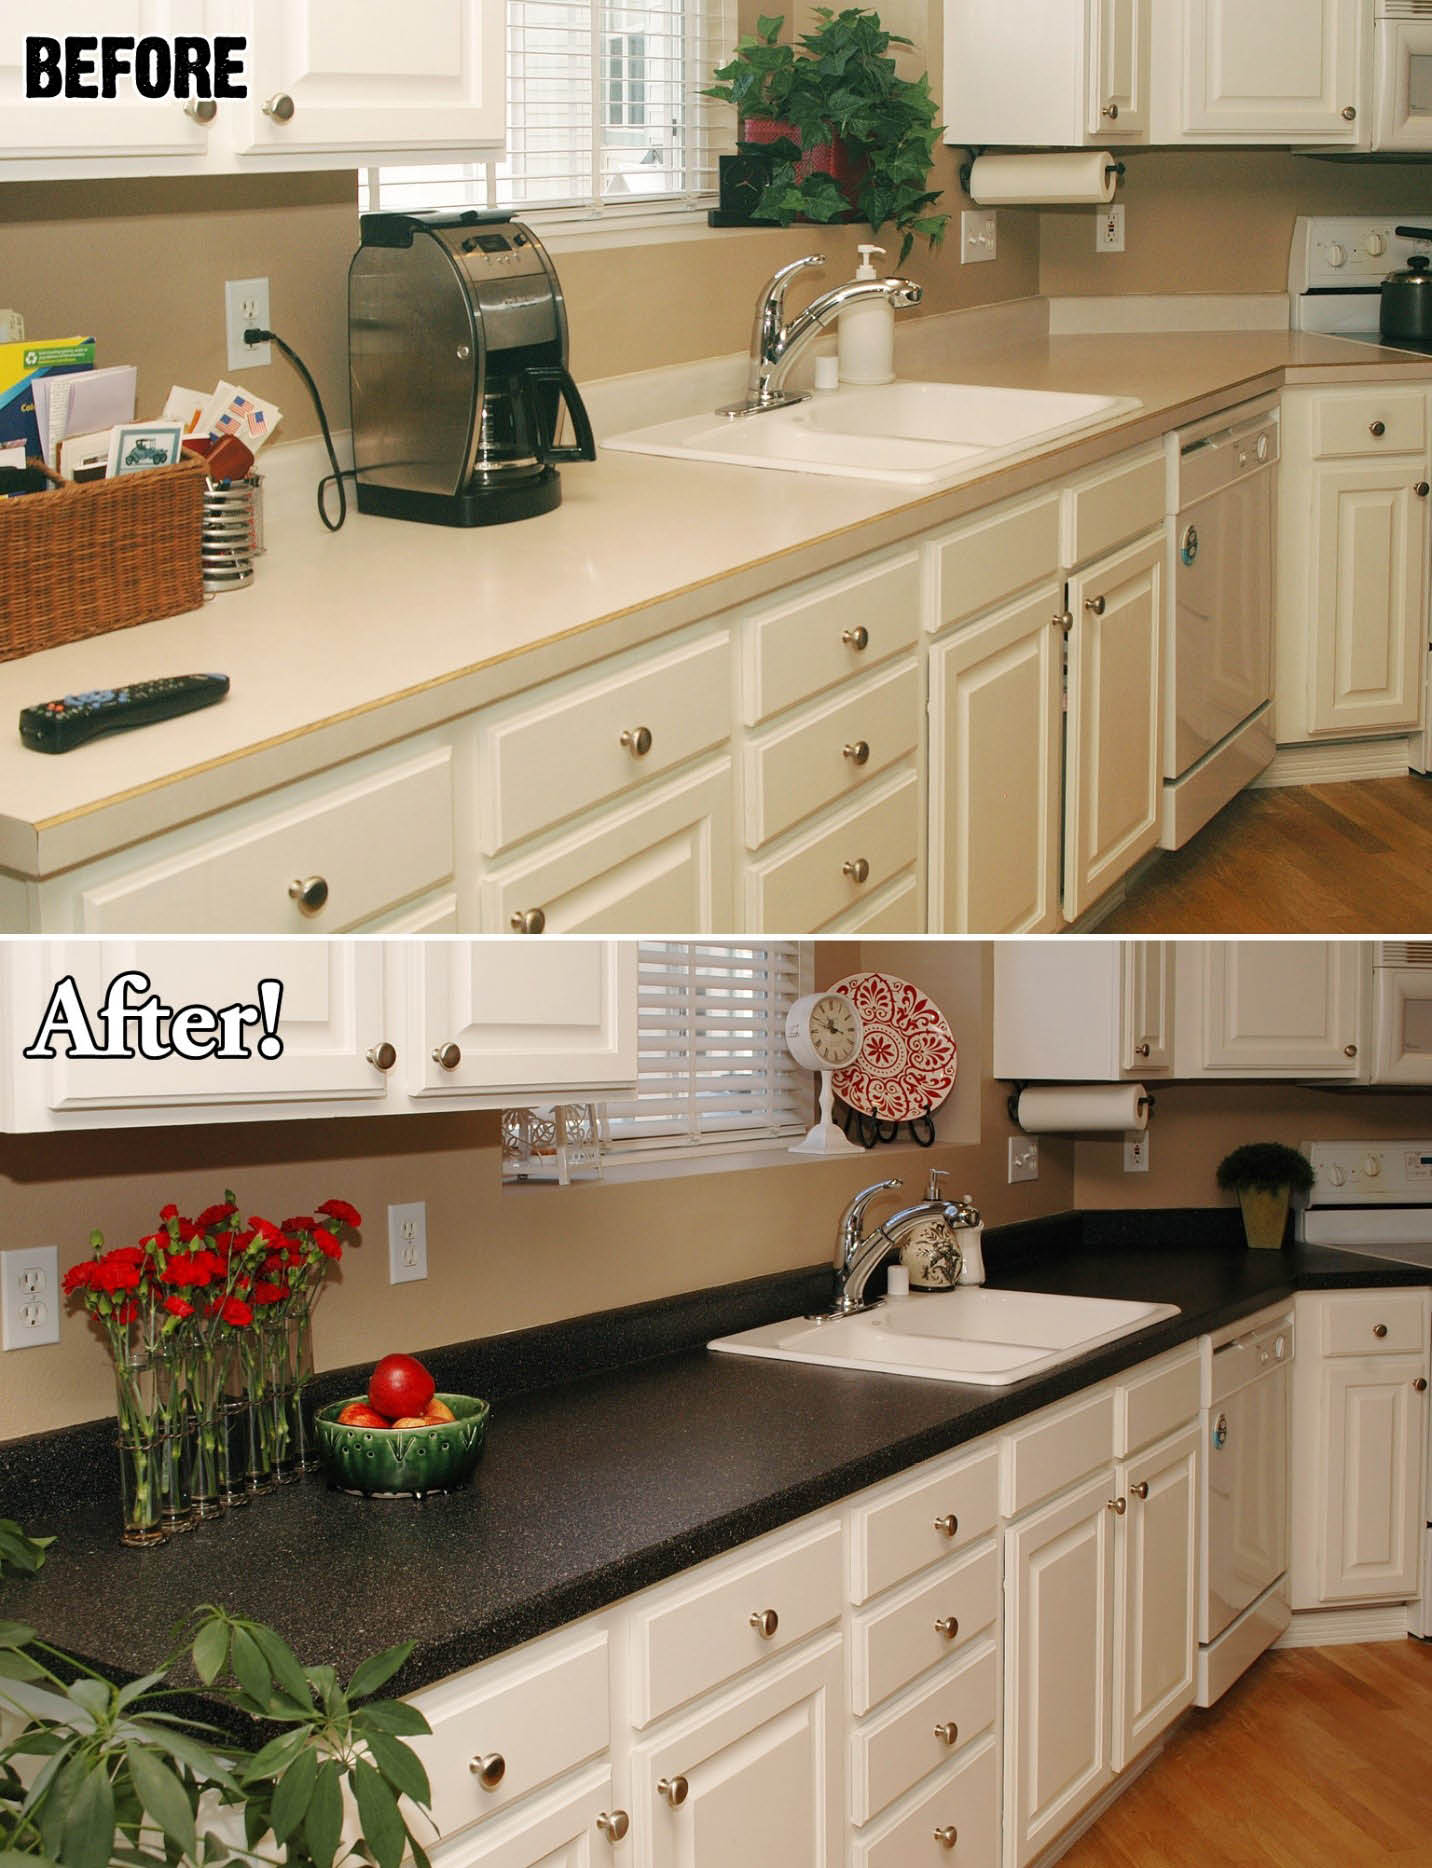 refinished kitchen countertop from cream to dark gray. home improvement in Georgia